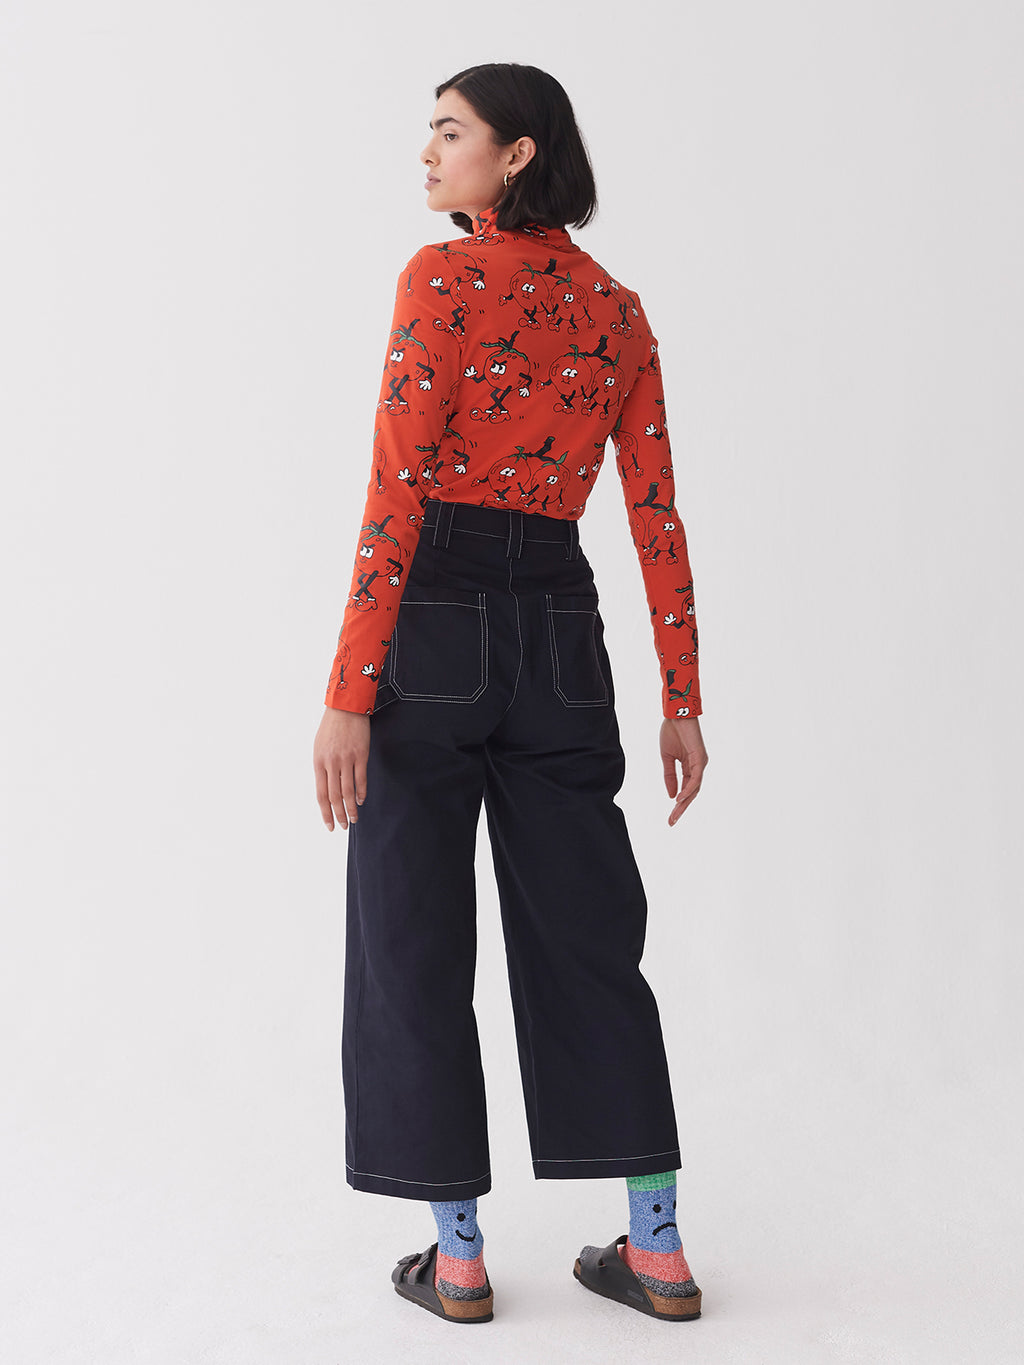 Lazy Oaf Long Sleeve Tomato Tee